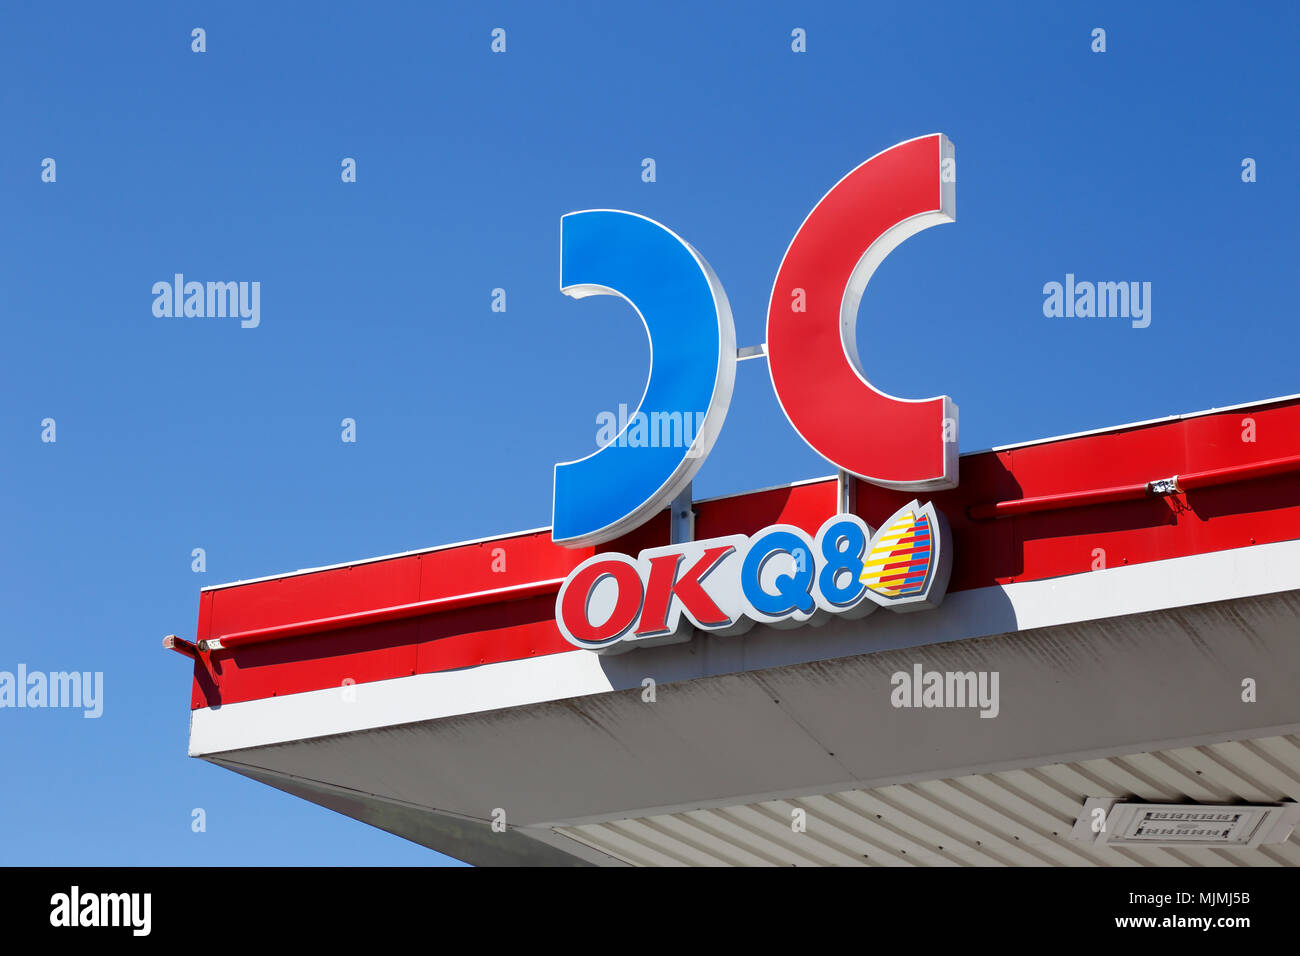 Ornskoldsvik, Sweden - June 29, 2017: The roof above the gasoline service station OKQ8 with a close-up of the brand name and logo. - Stock Image